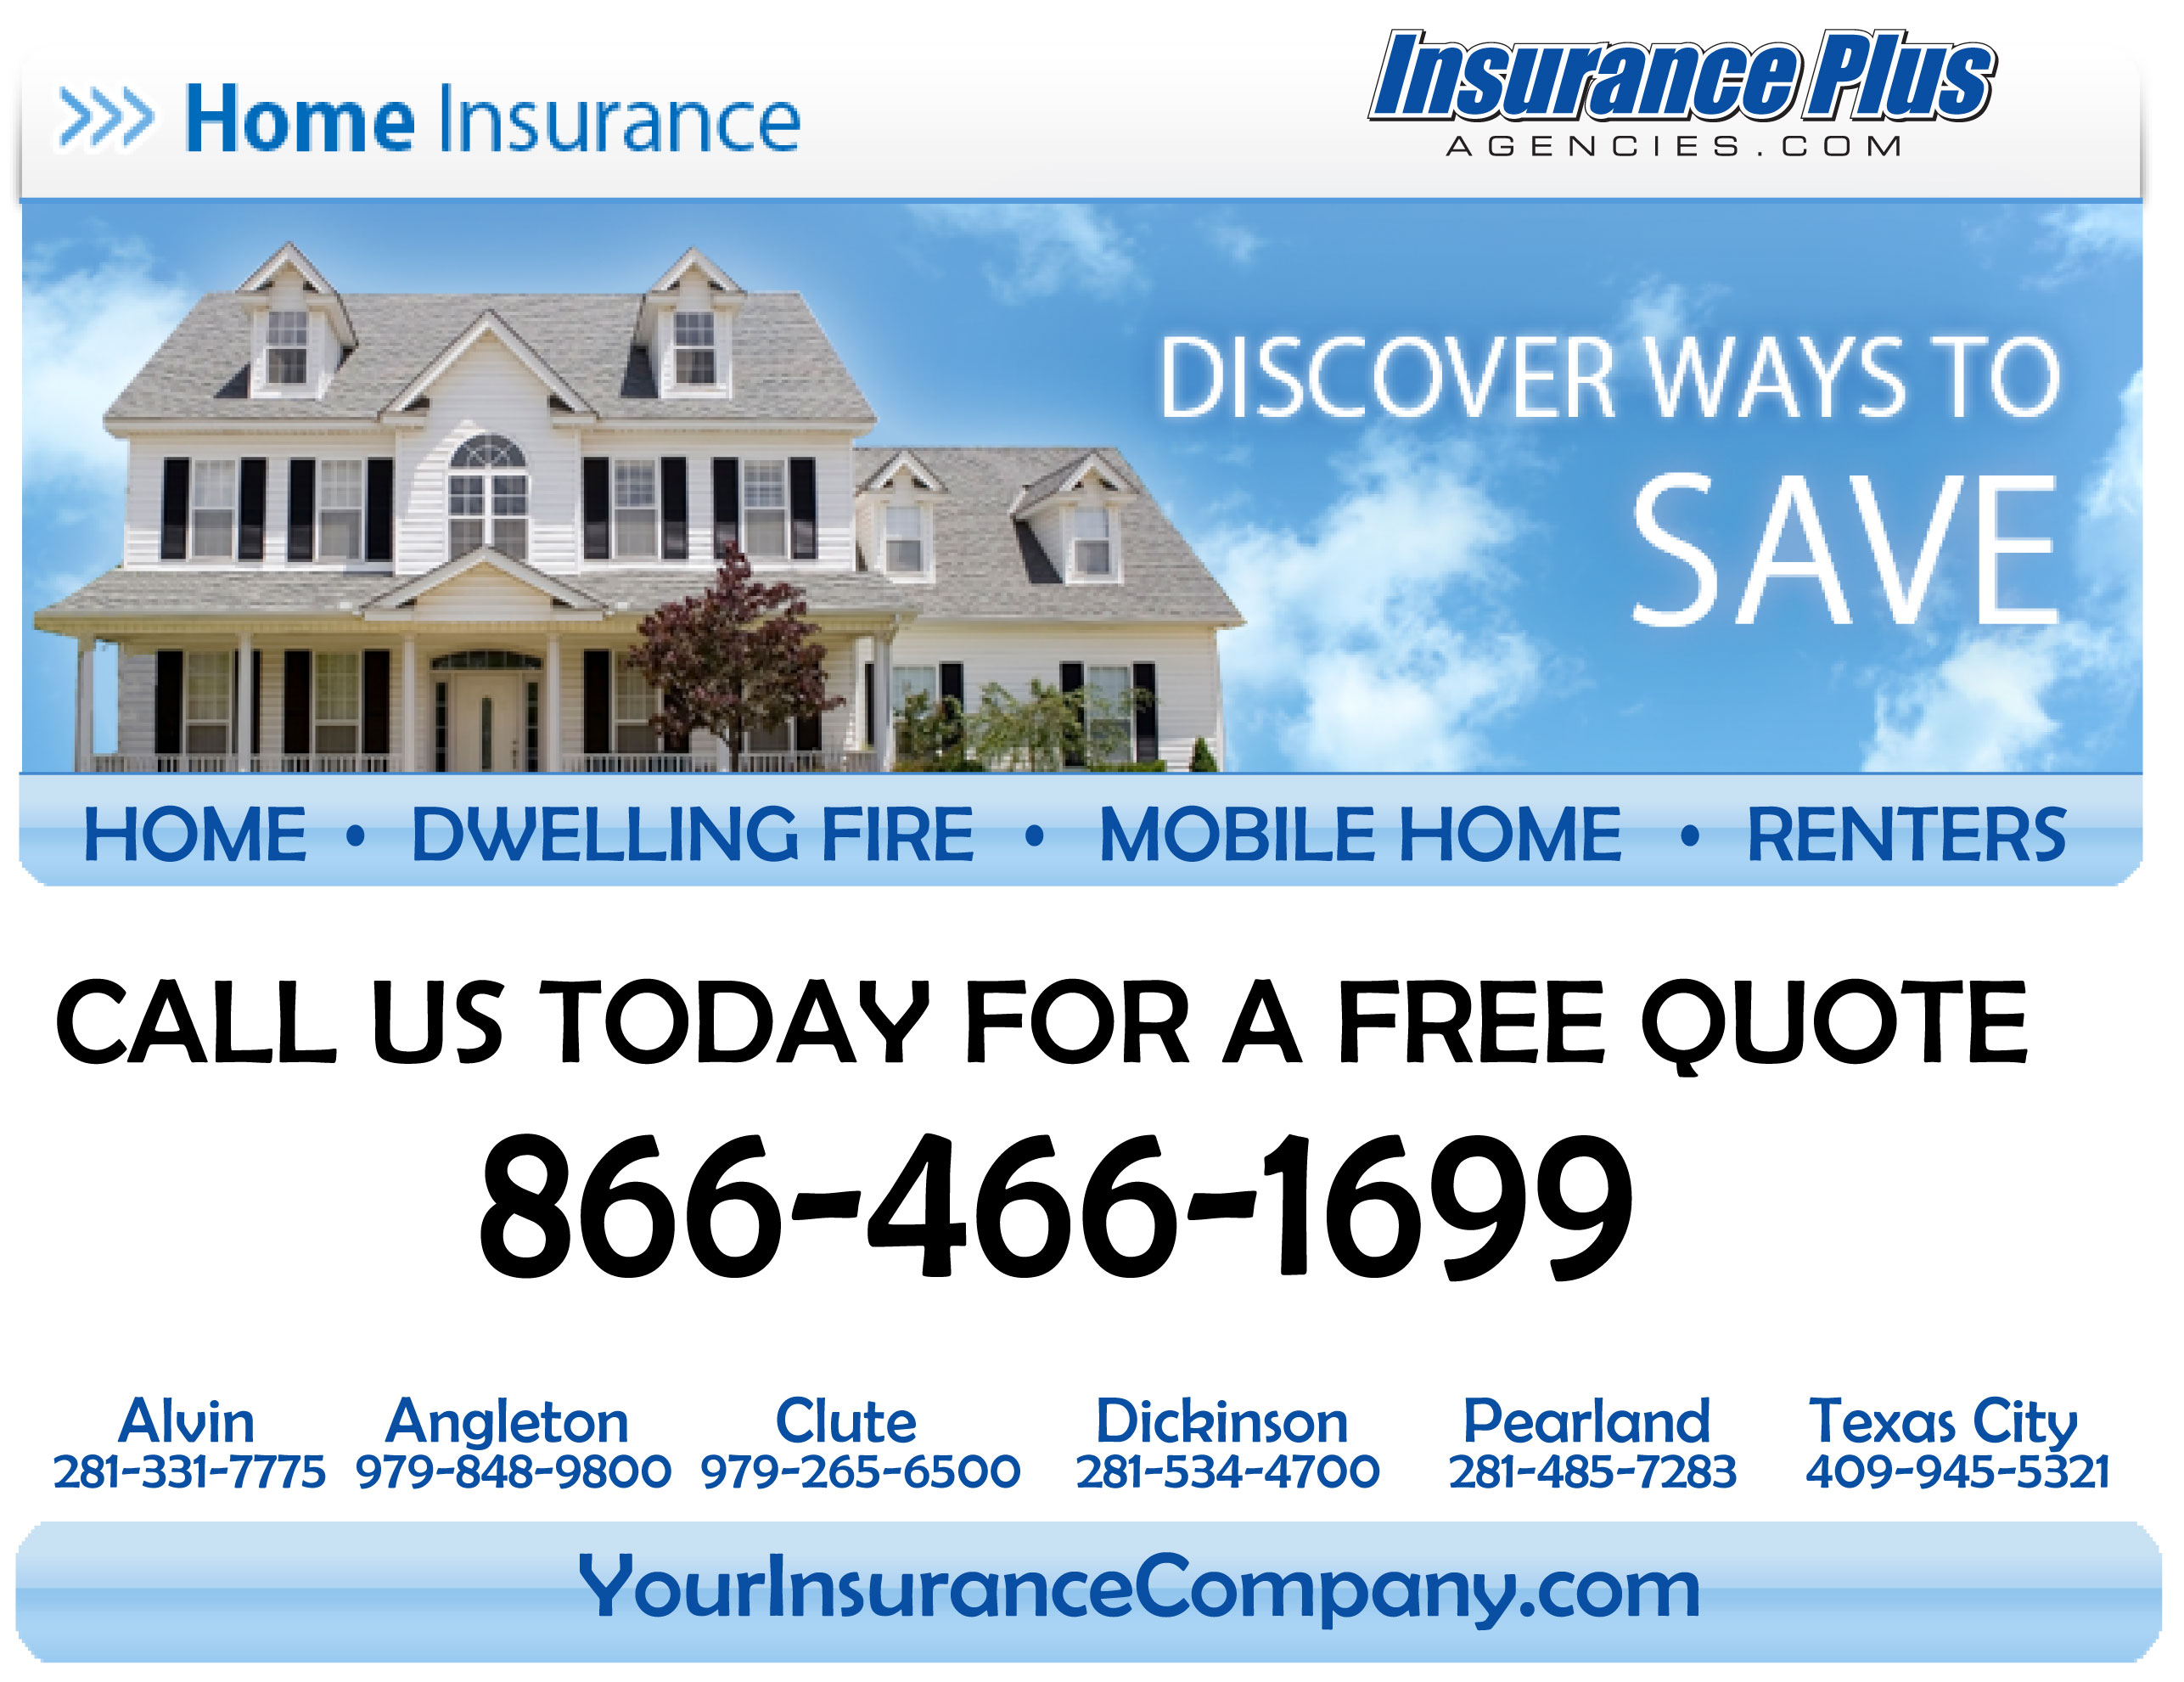 Texas Home Insurance from Insurance Plus Agencies